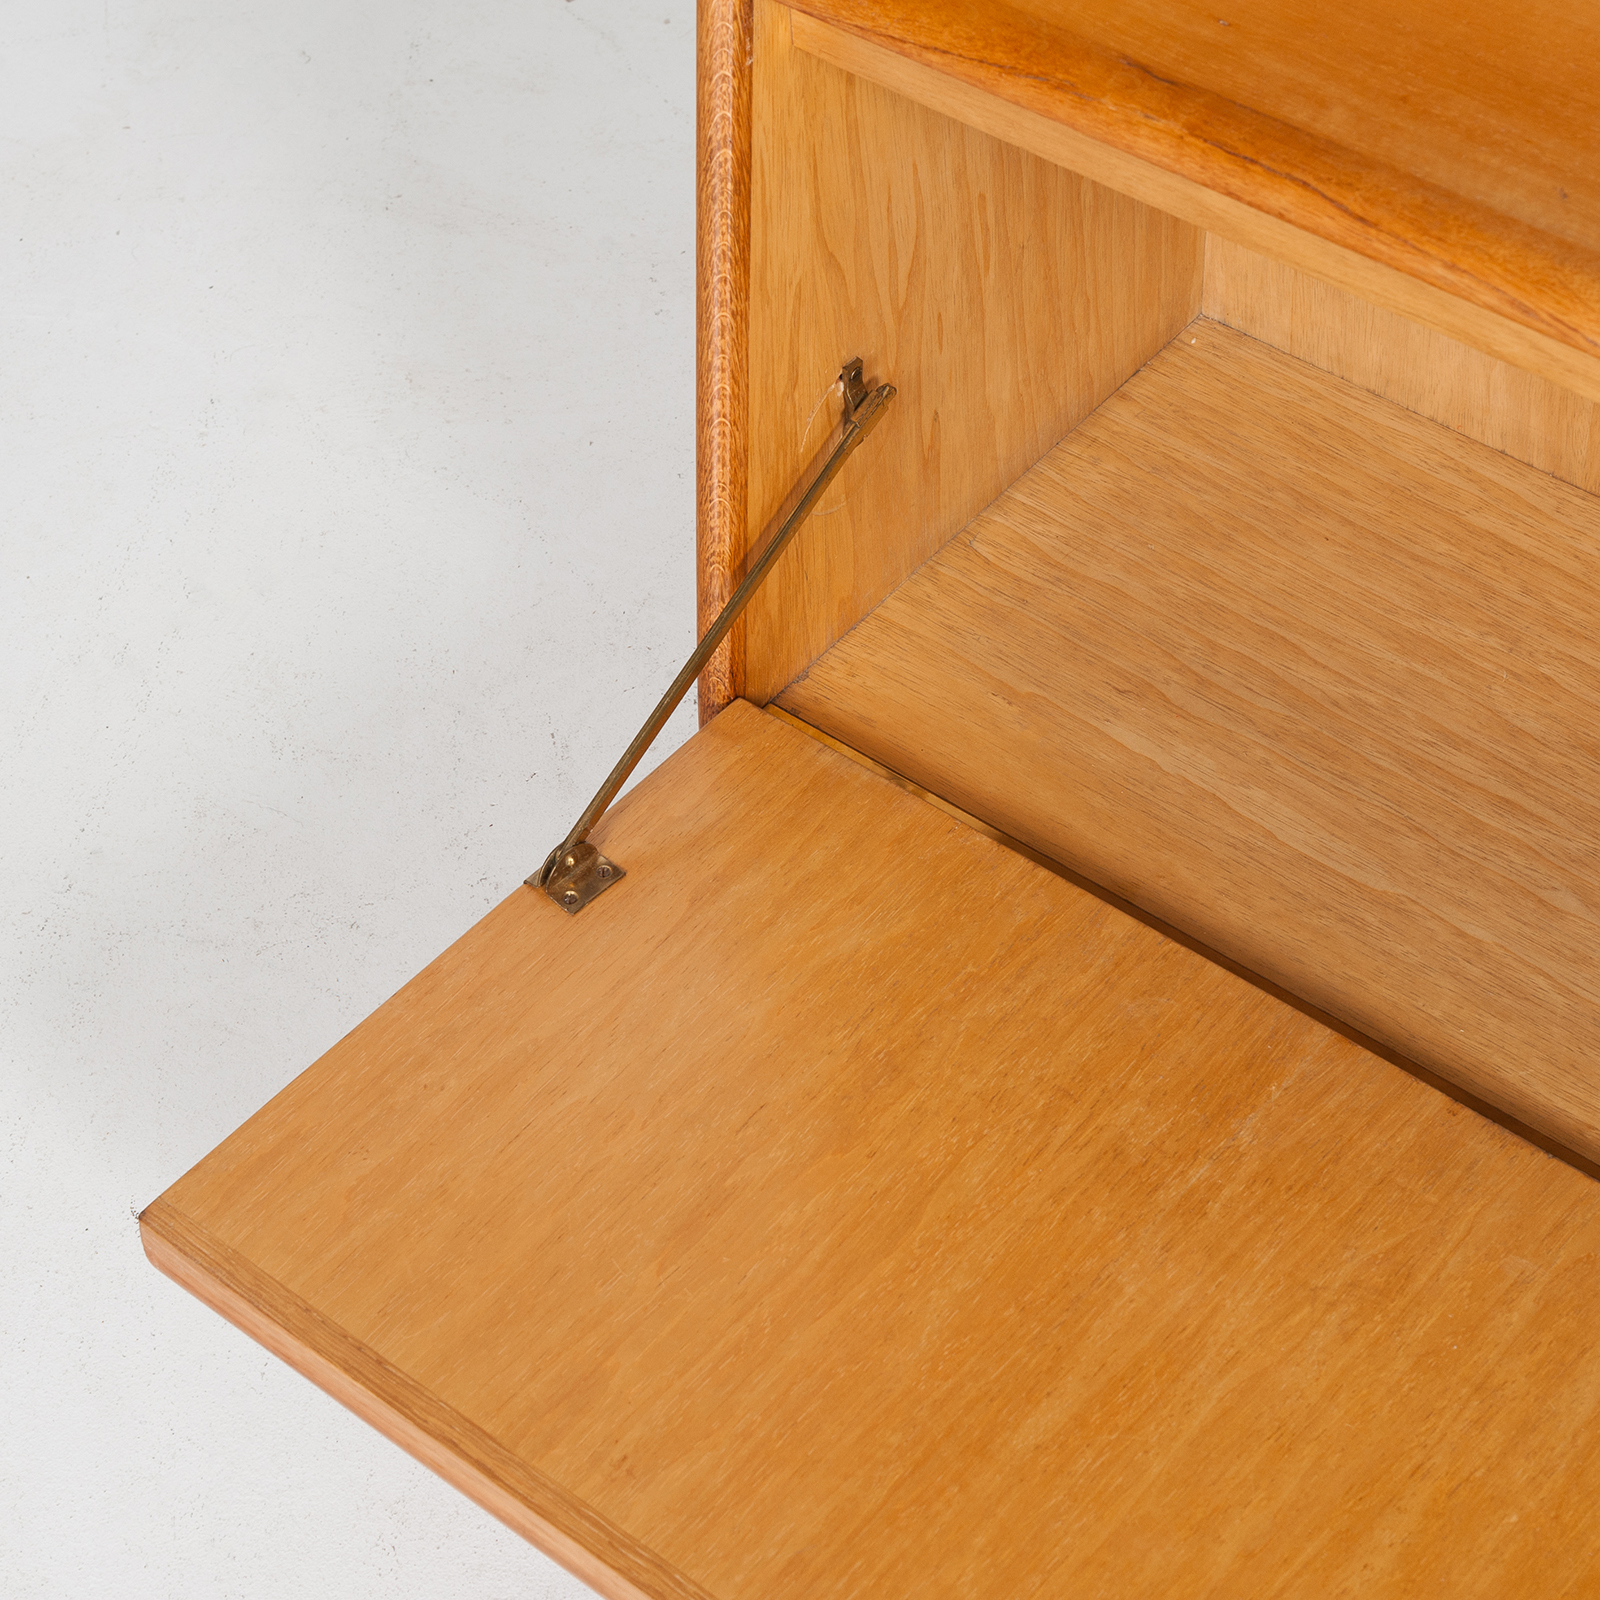 Model Be 03 Oak Series Bookcase By Cees Braakman For Pastoe, 1950s, The Netherlands 37